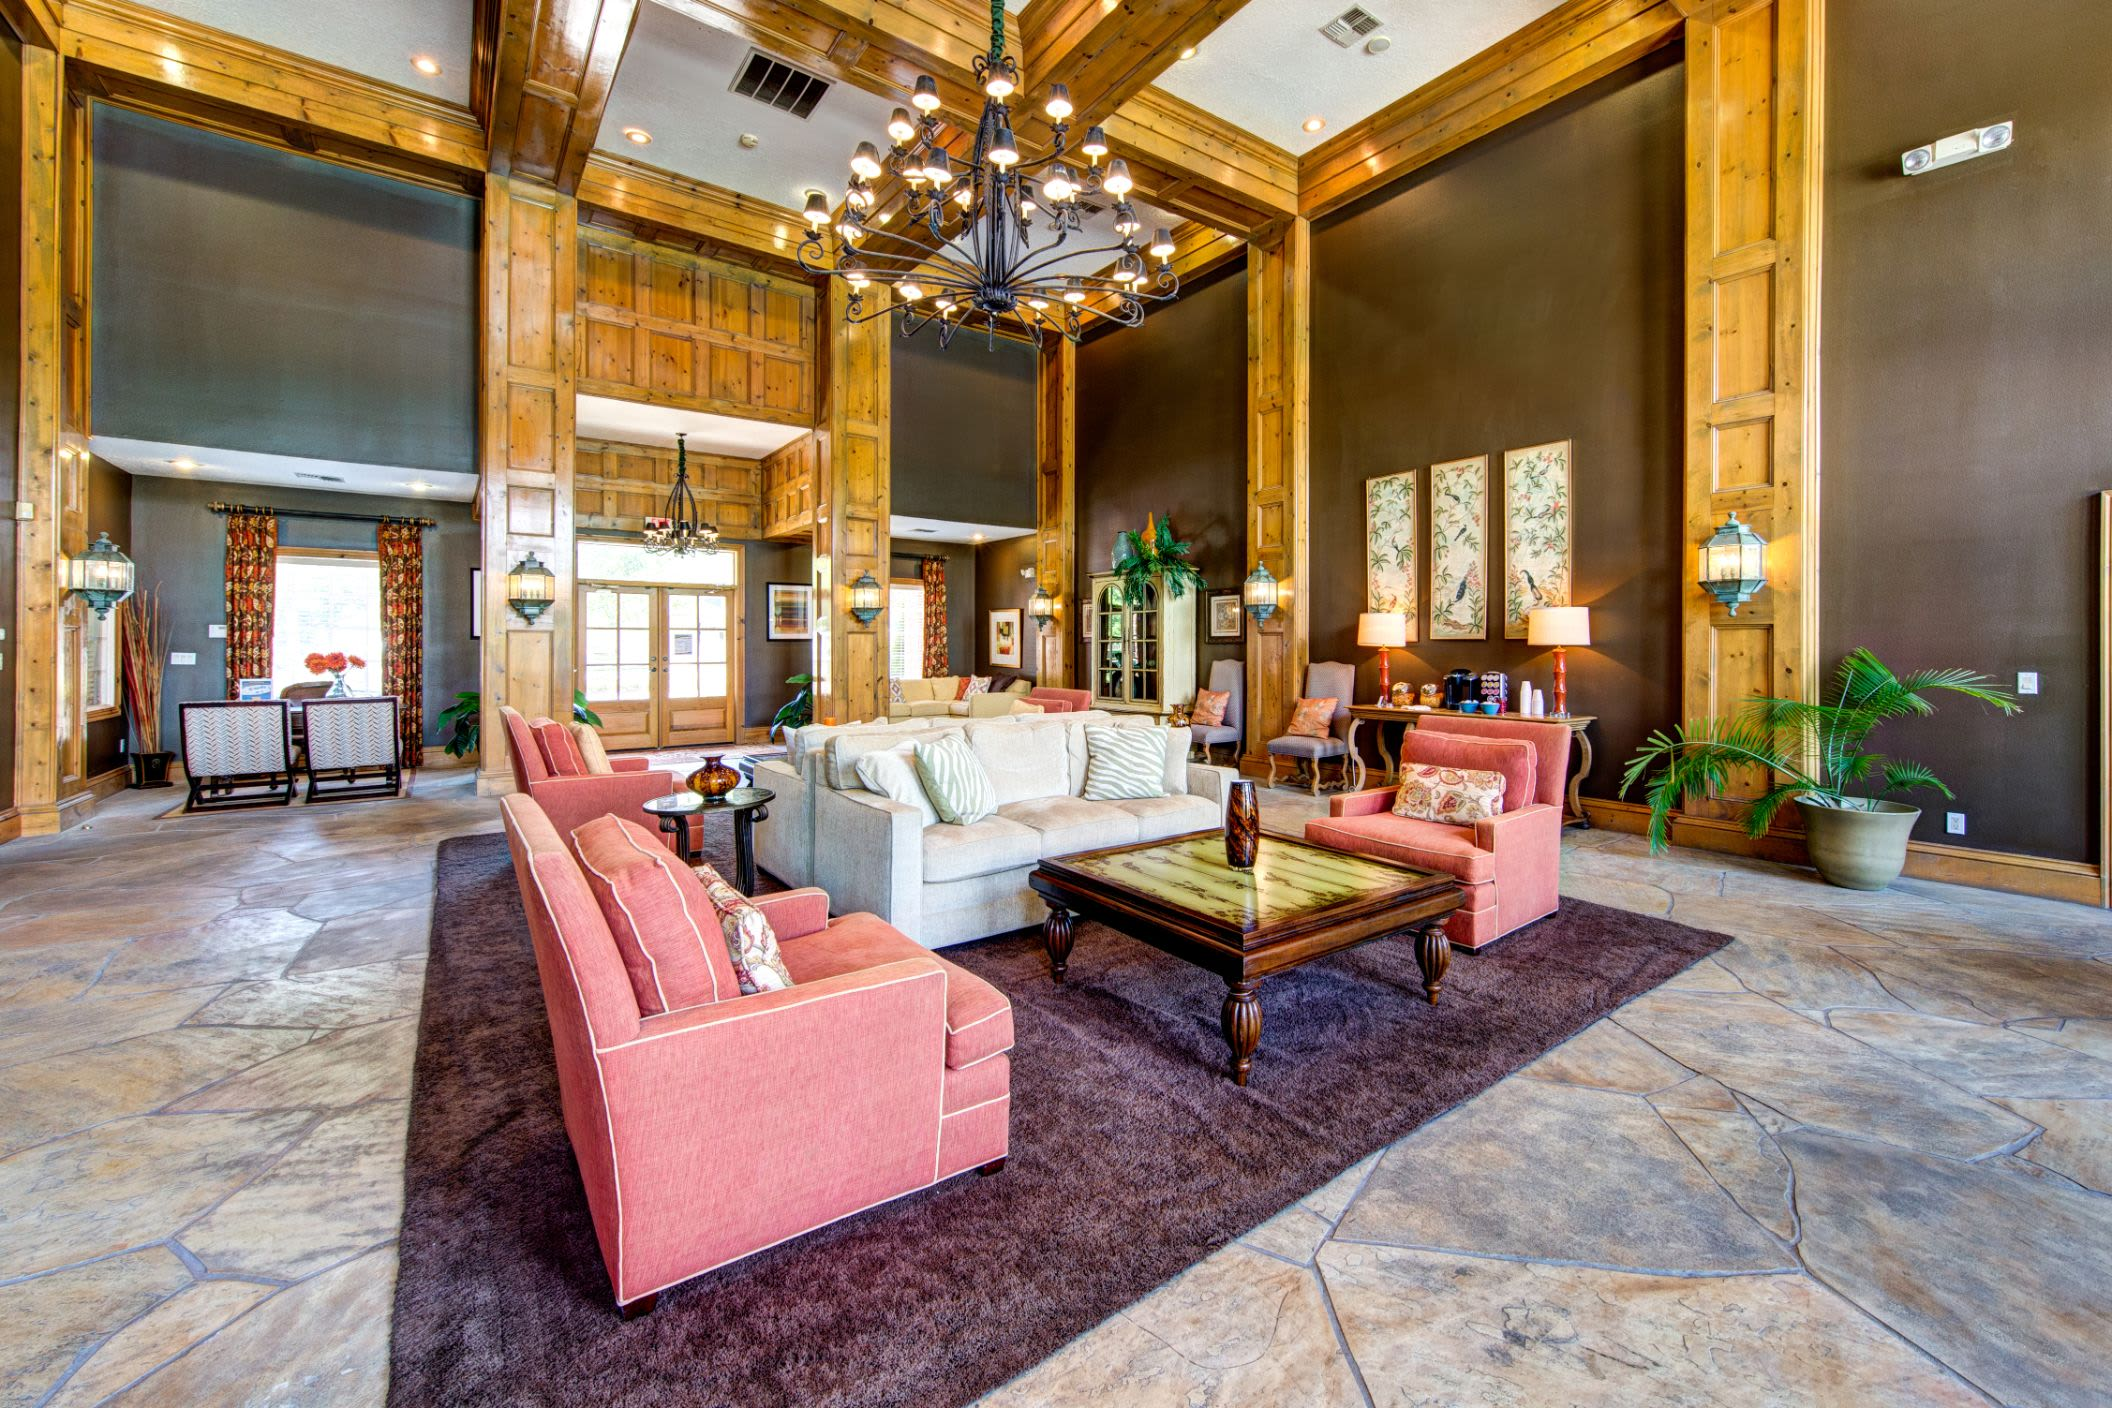 View our amenities at Marquis at Silverton in Cary, North Carolina